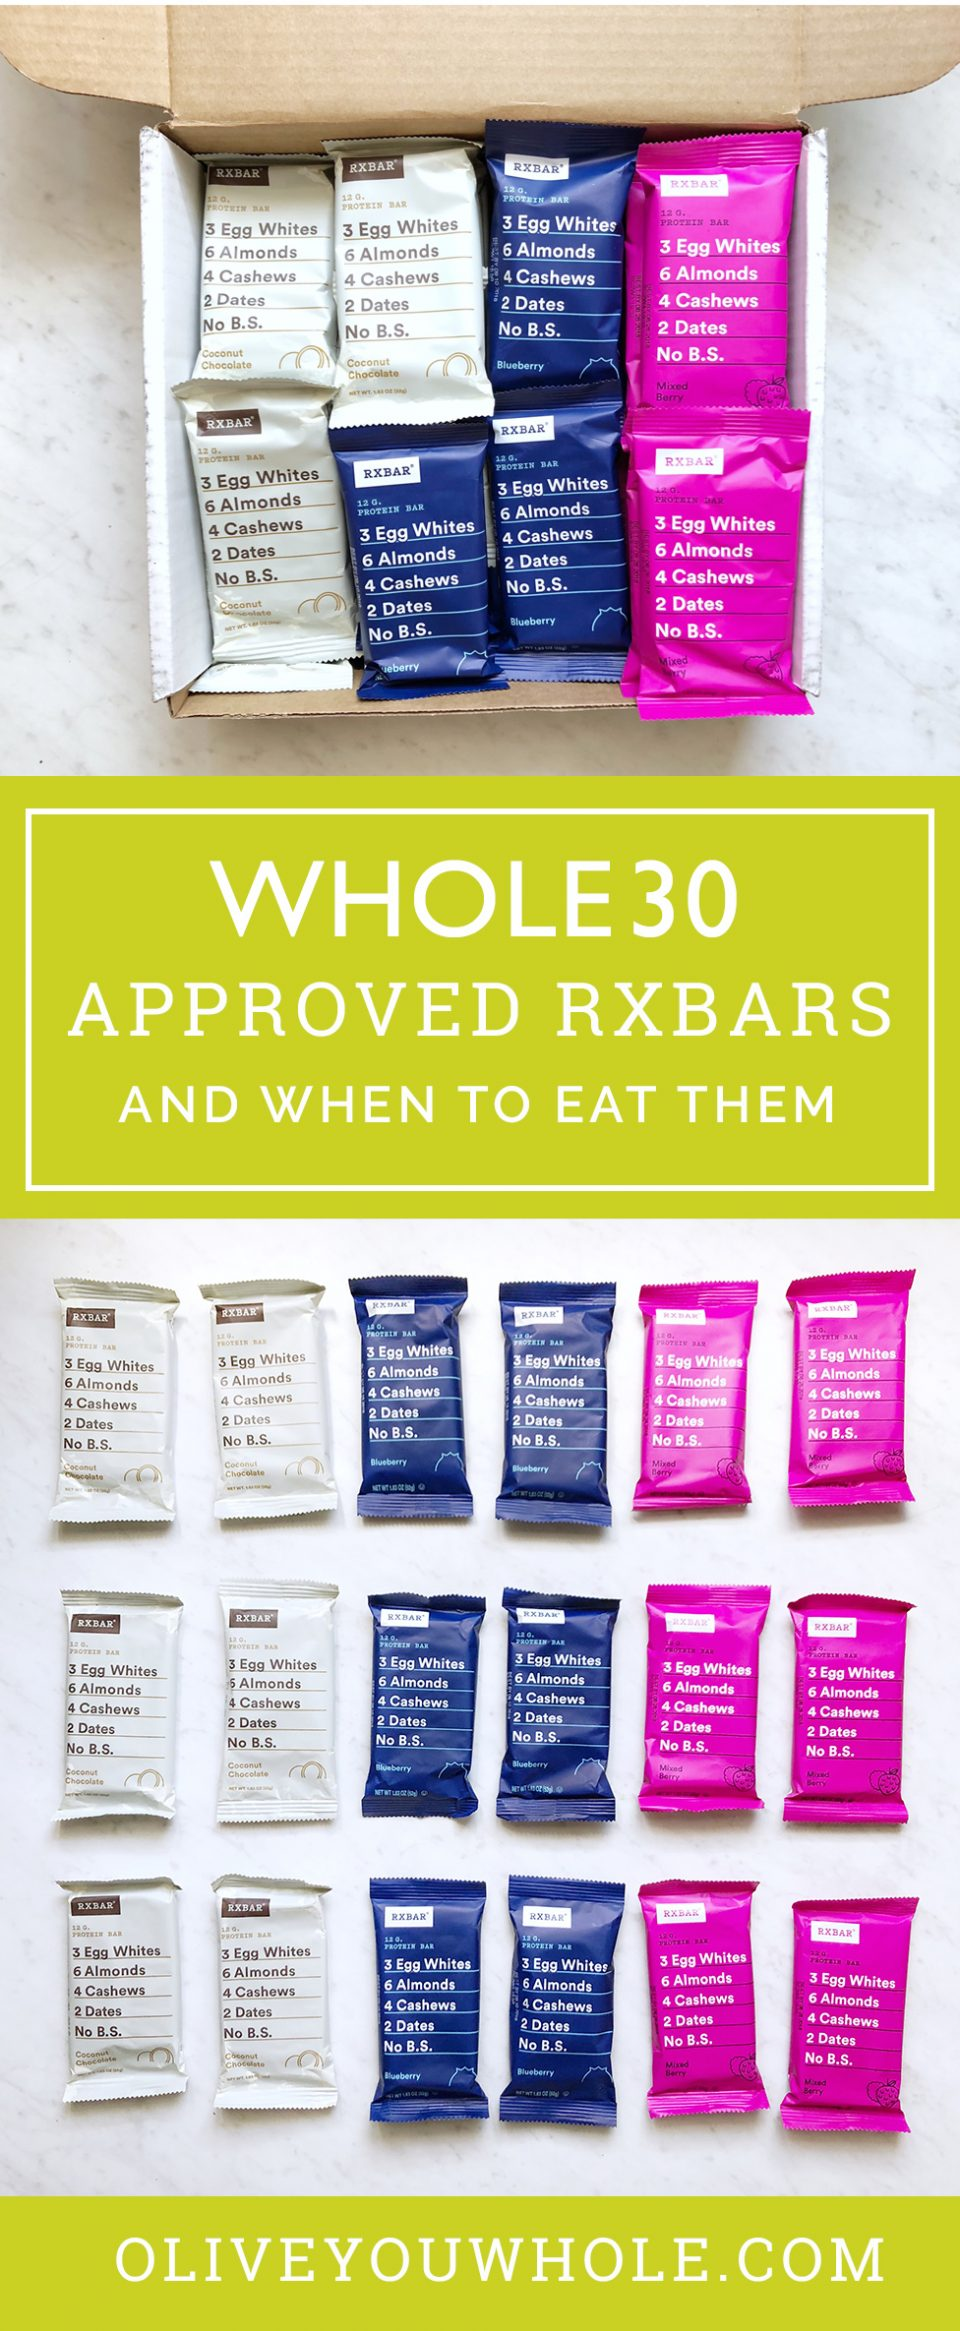 Whole30 RXbars Approved and When to Eat Them